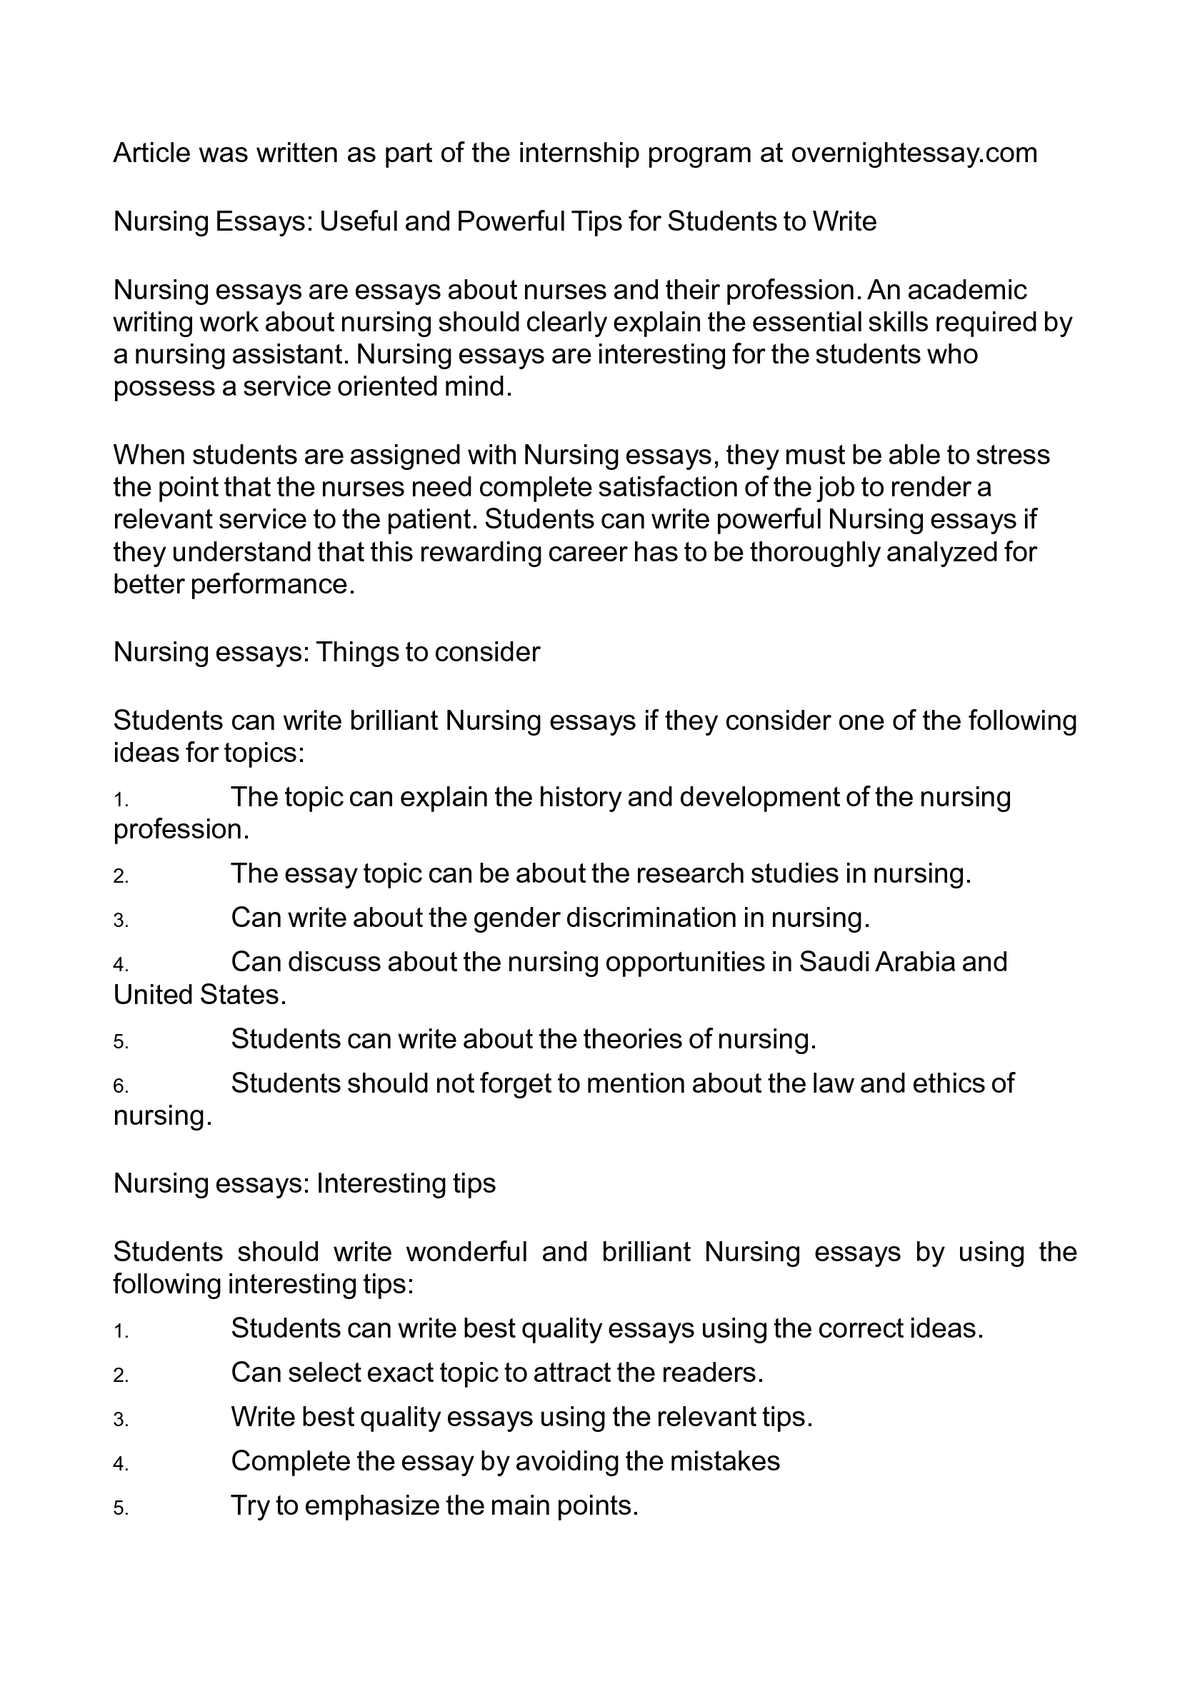 003 P1 Essay Example On Nursing As Shocking A Profession Professionalism In Pakistan Full